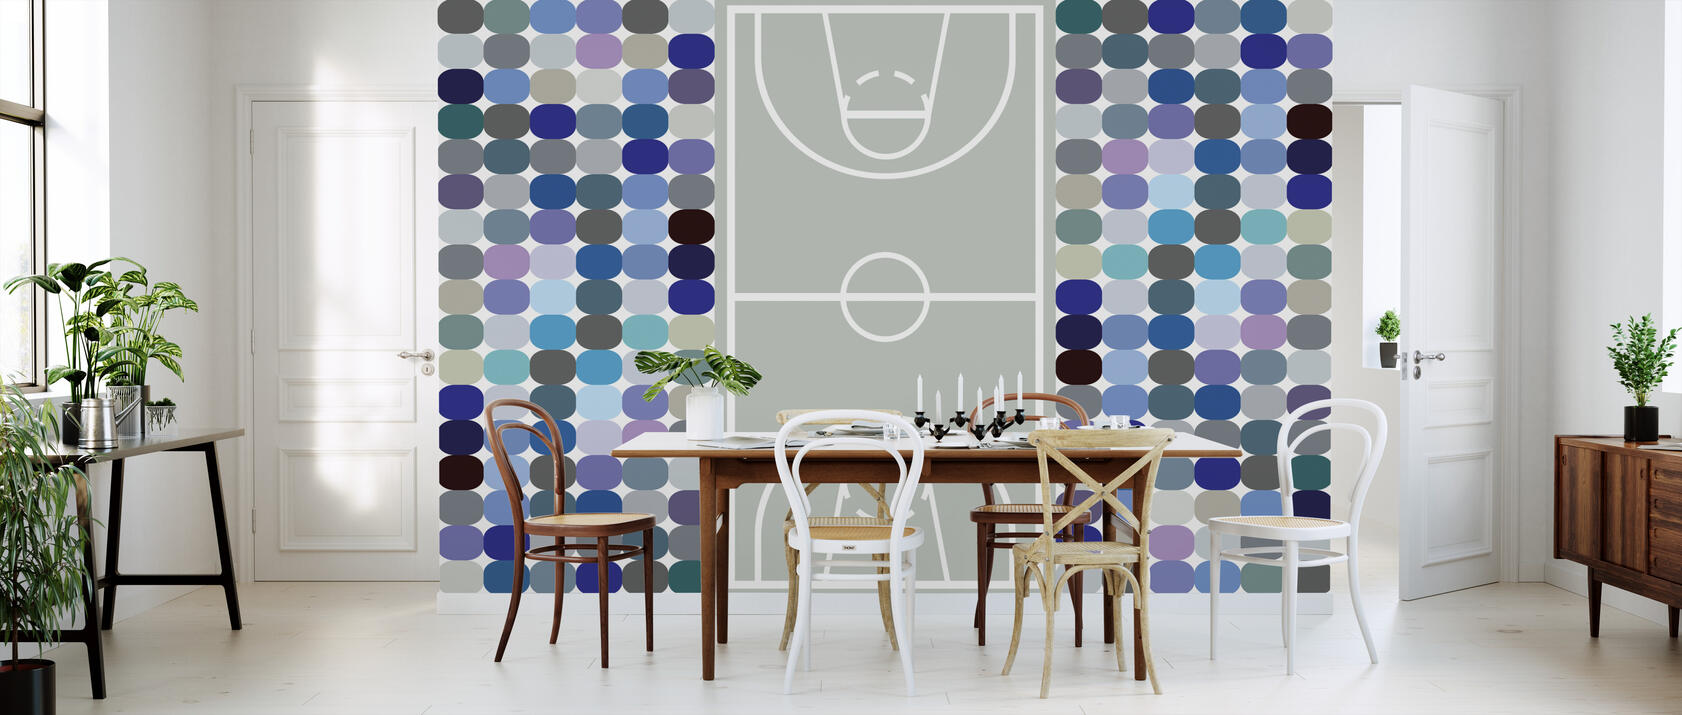 basketball mit fototapeten einrichten photowall. Black Bedroom Furniture Sets. Home Design Ideas